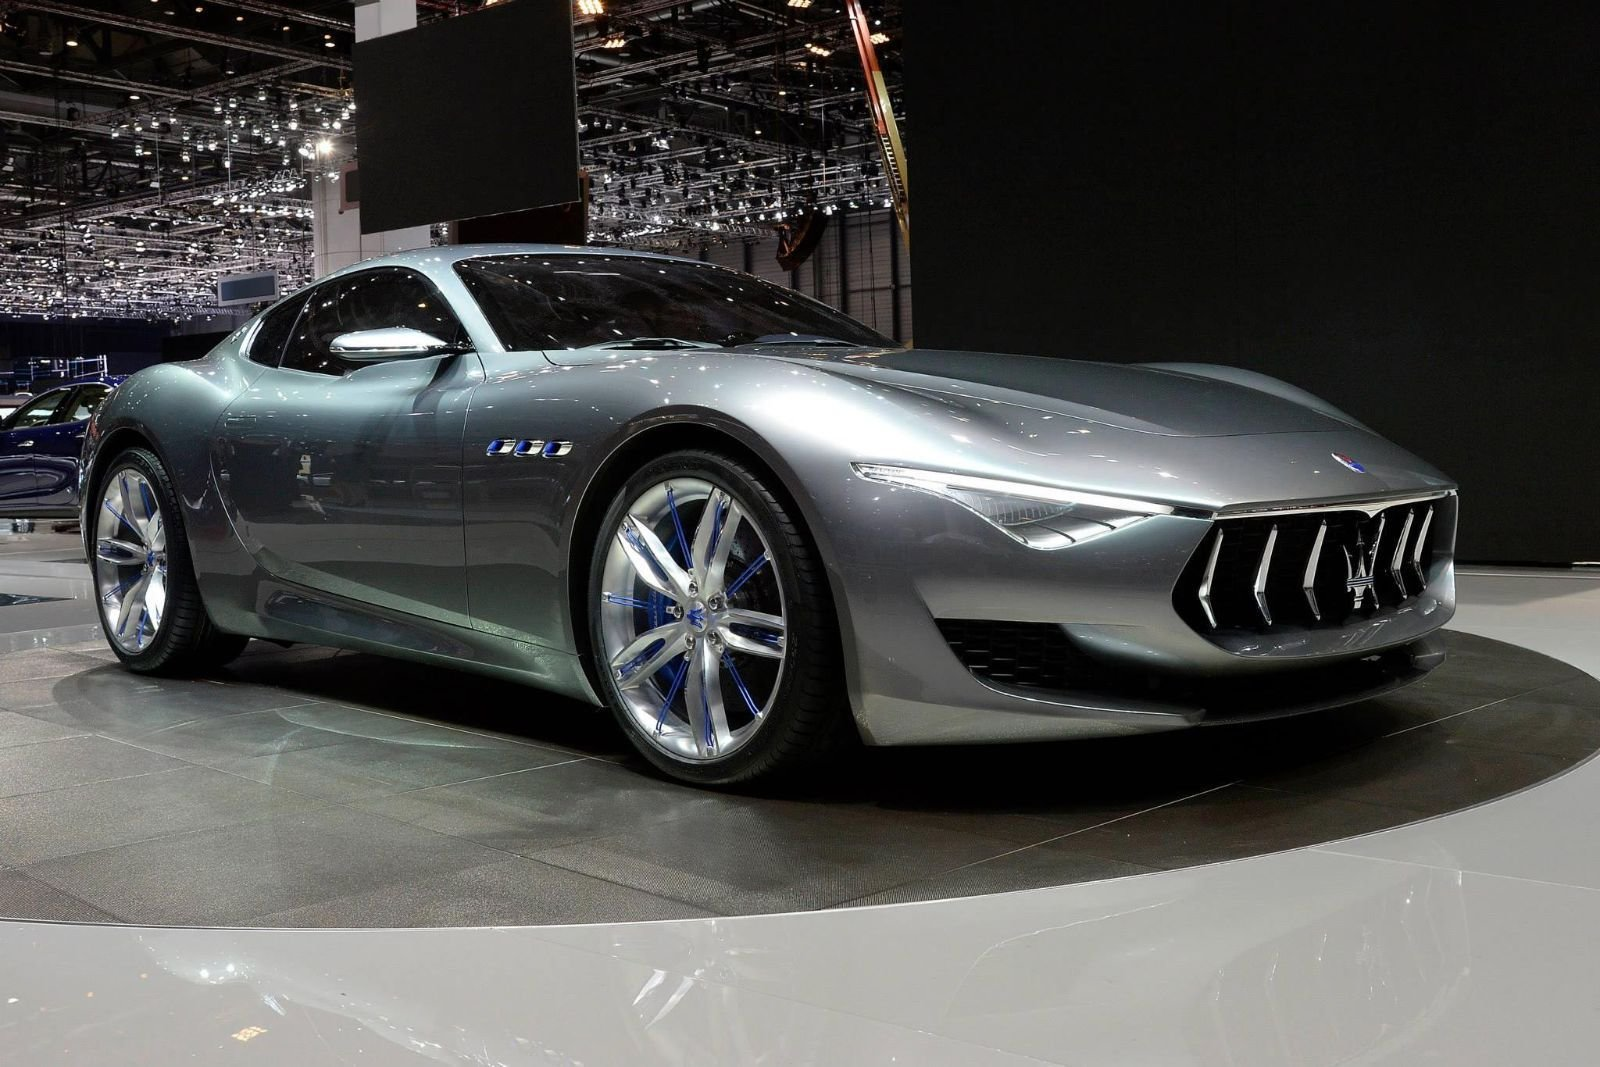 Latest Alfieri Concept Car The Car Anticipating The Future Free Download